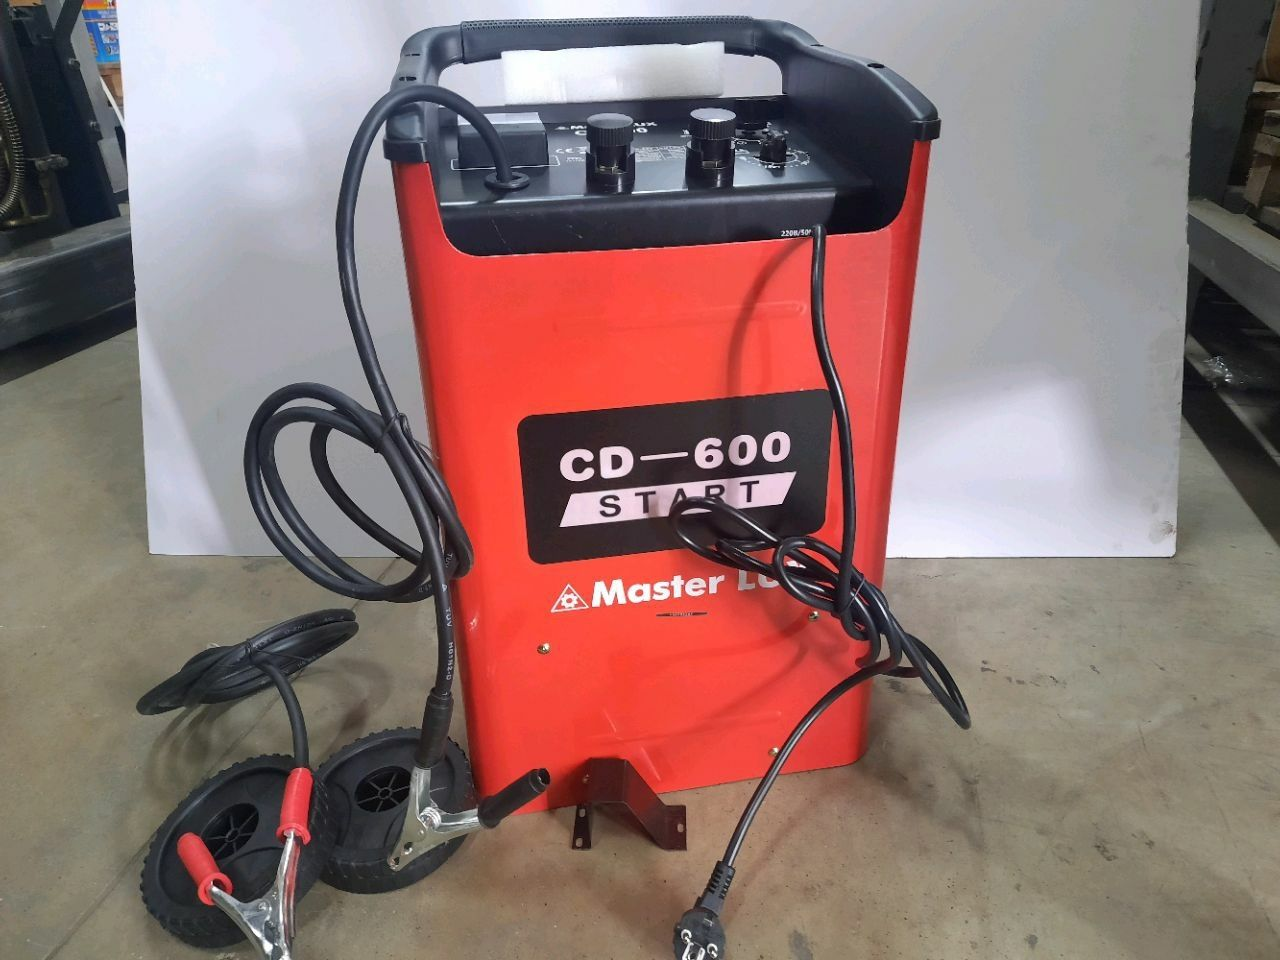 Aparat electric de demarare/ încărcare CD-600